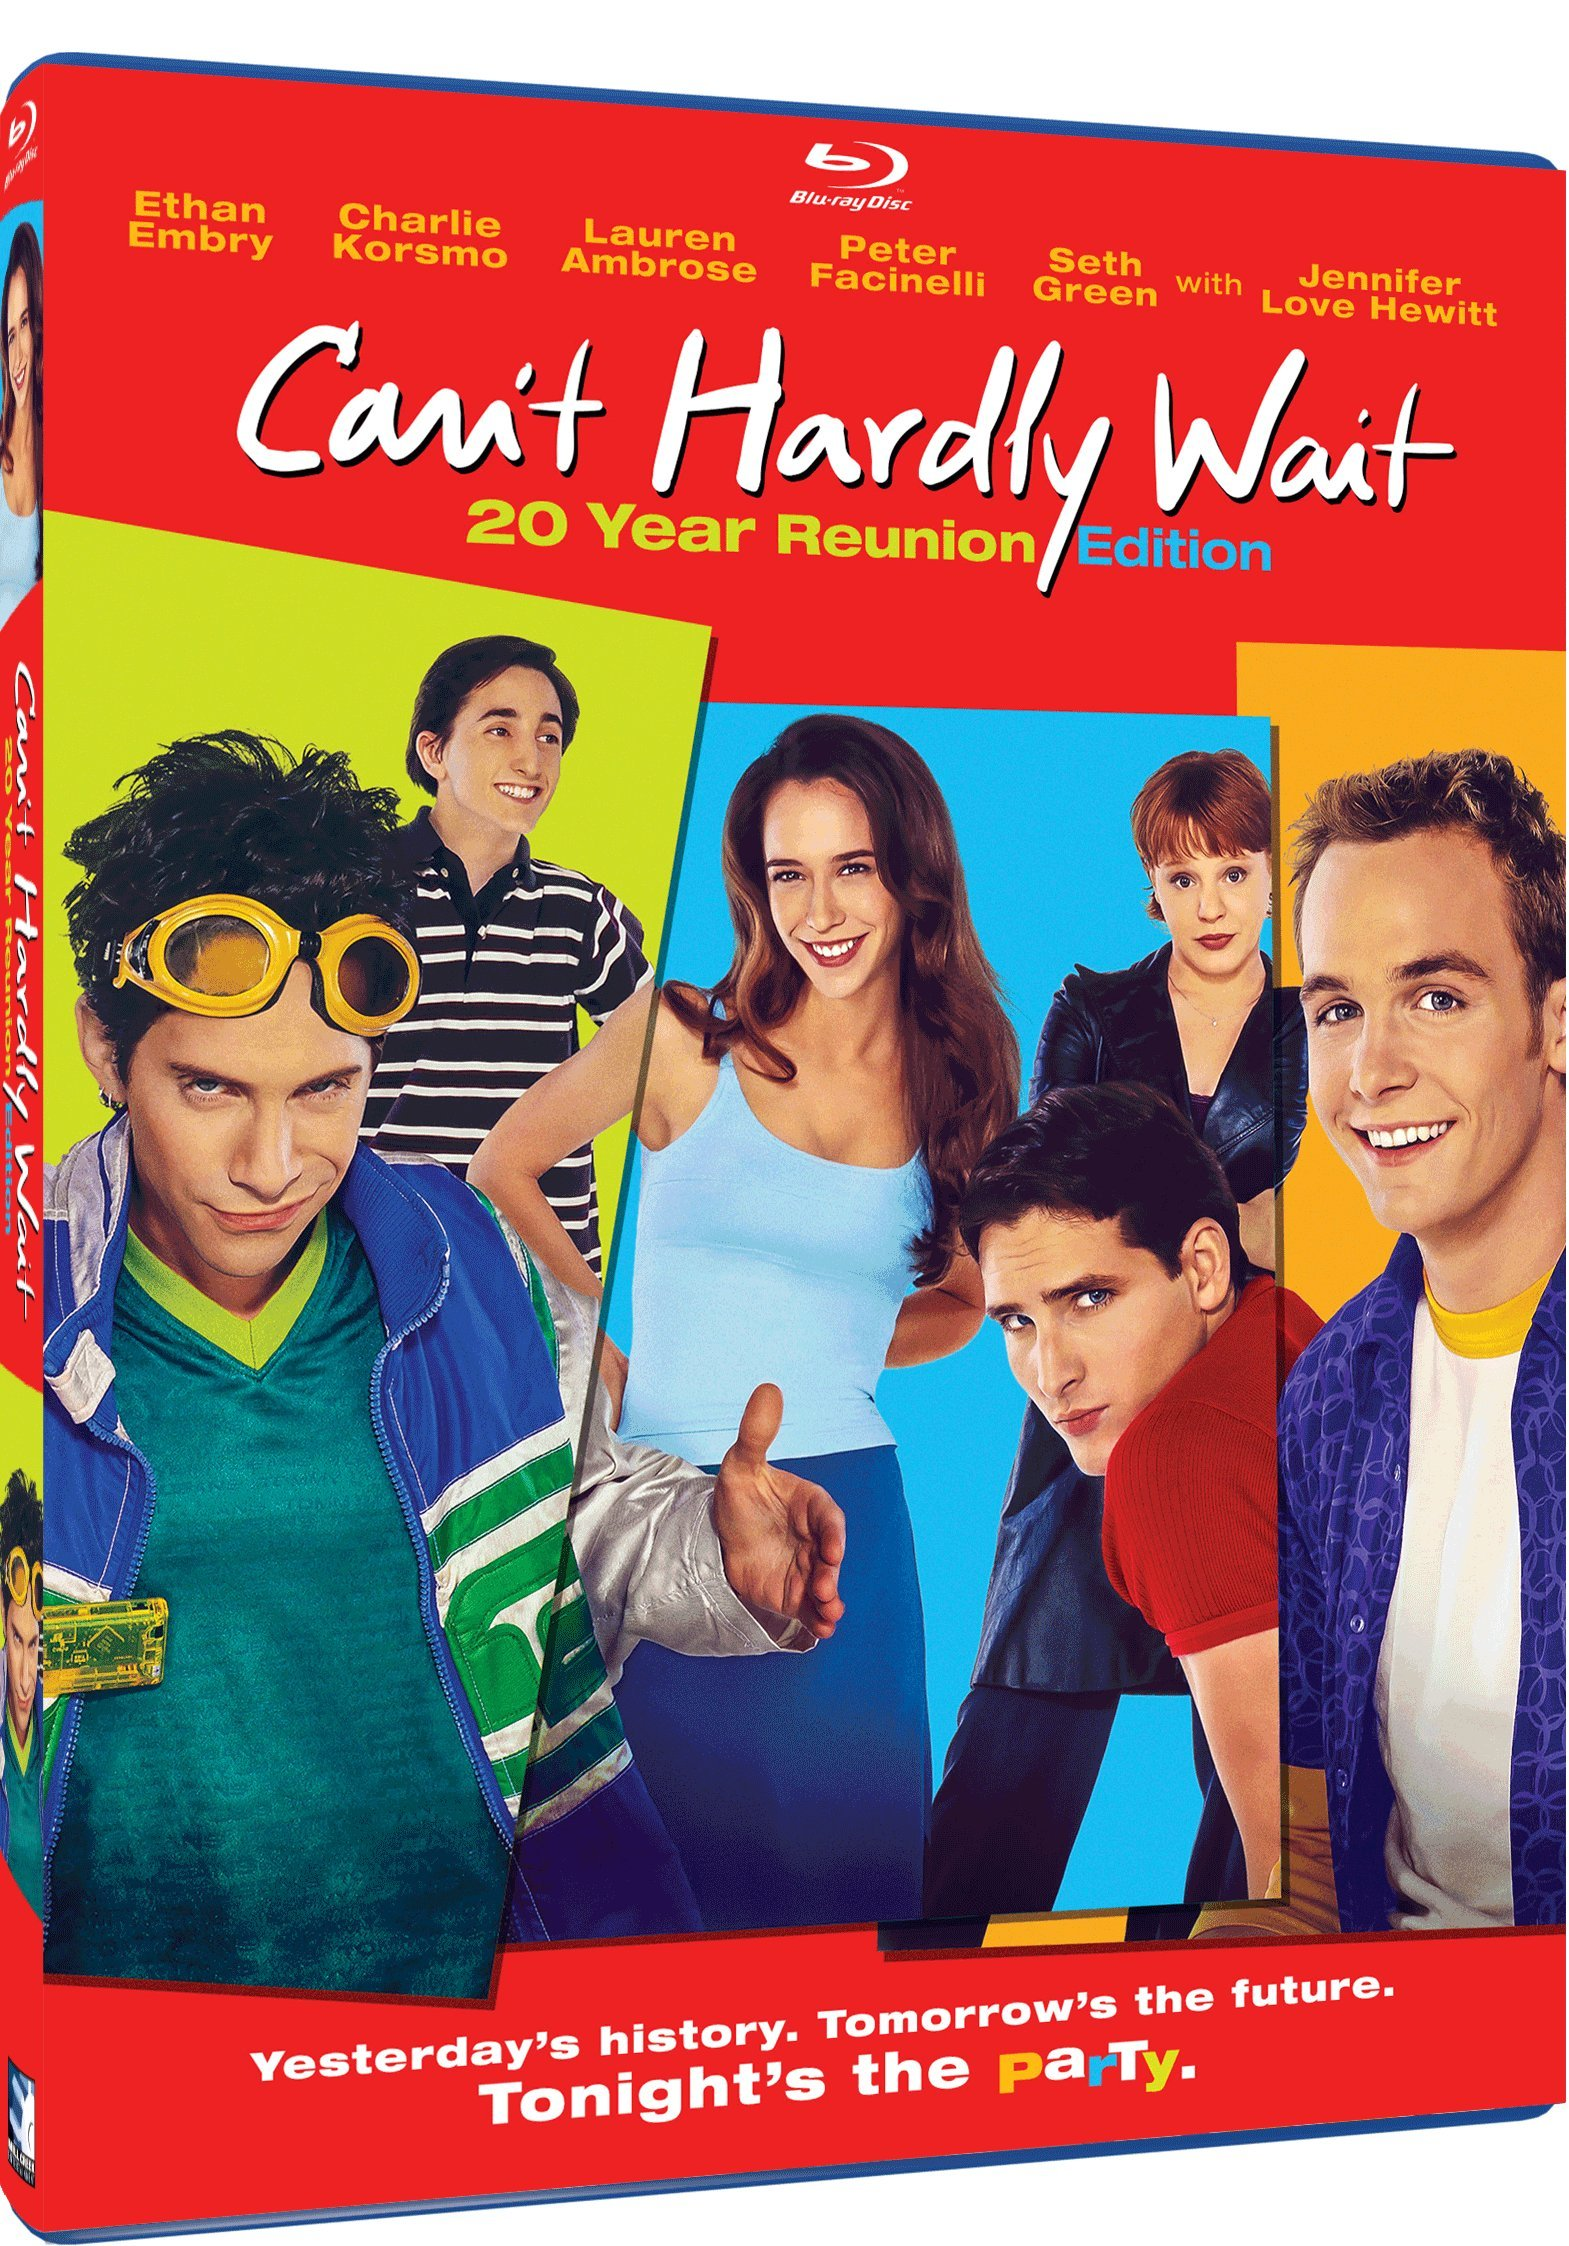 Blu-ray : Can't Hardly Wait (20 Year Reunion) (Bonus Features)